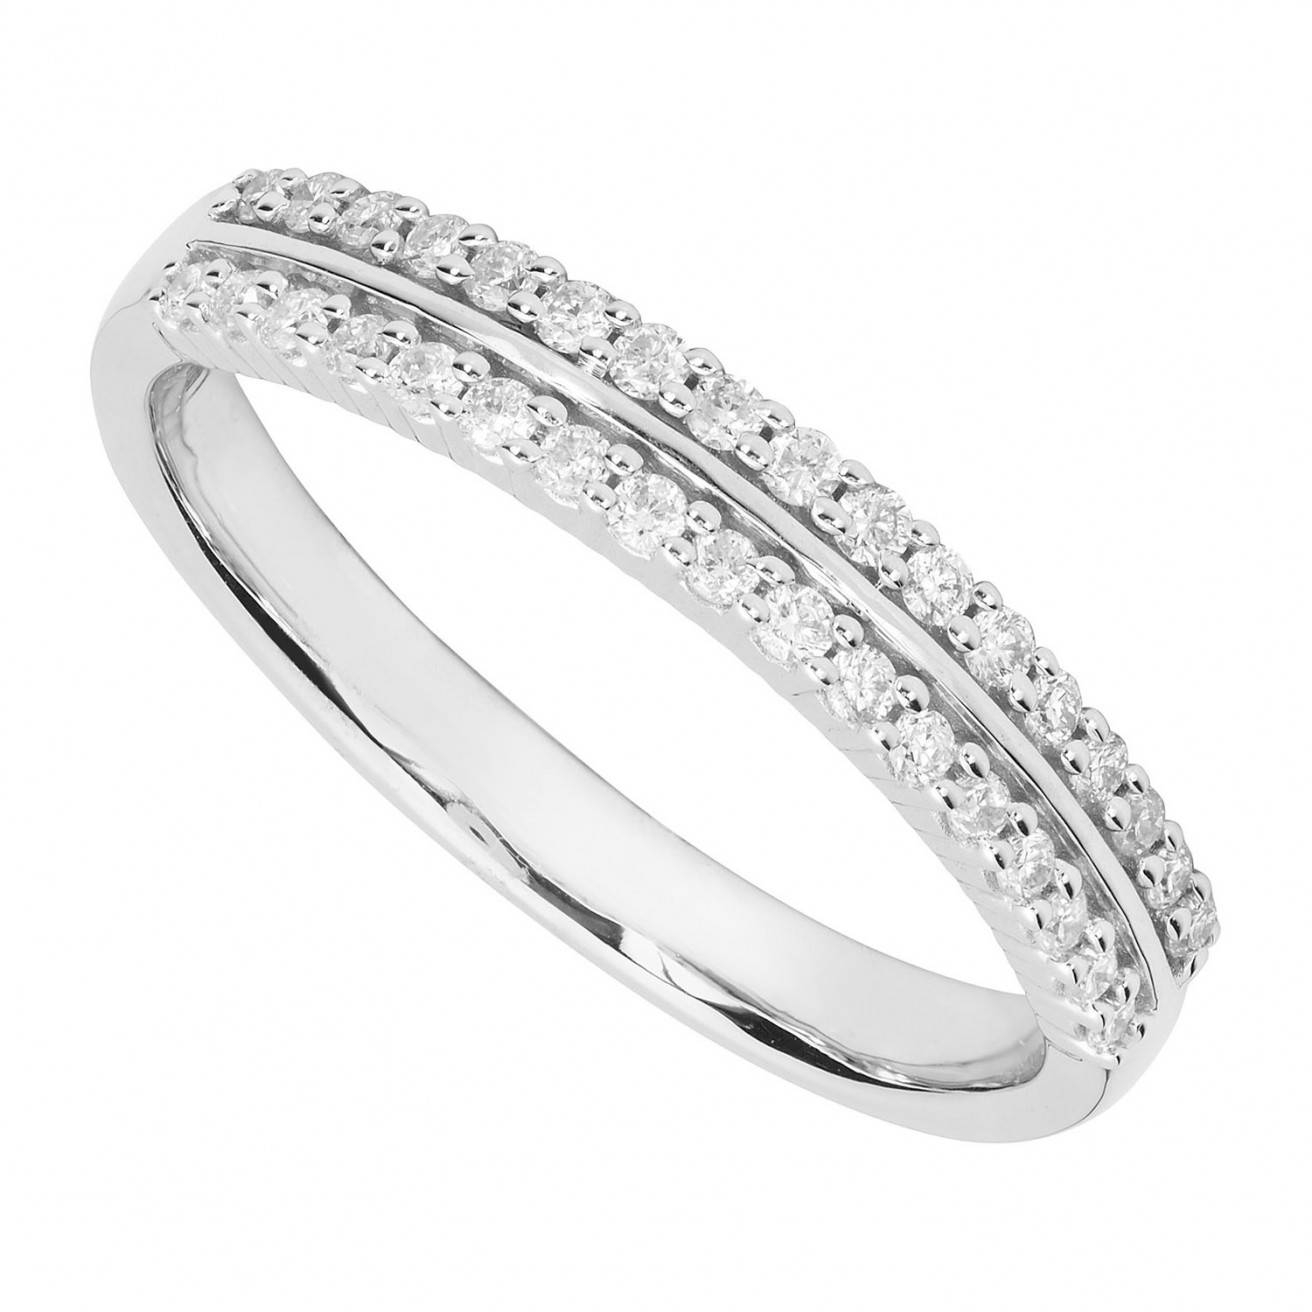 Buy White Gold Wedding Rings Online – Fraser Hart Intended For Ladies White Gold Diamond Wedding Bands (Gallery 3 of 15)